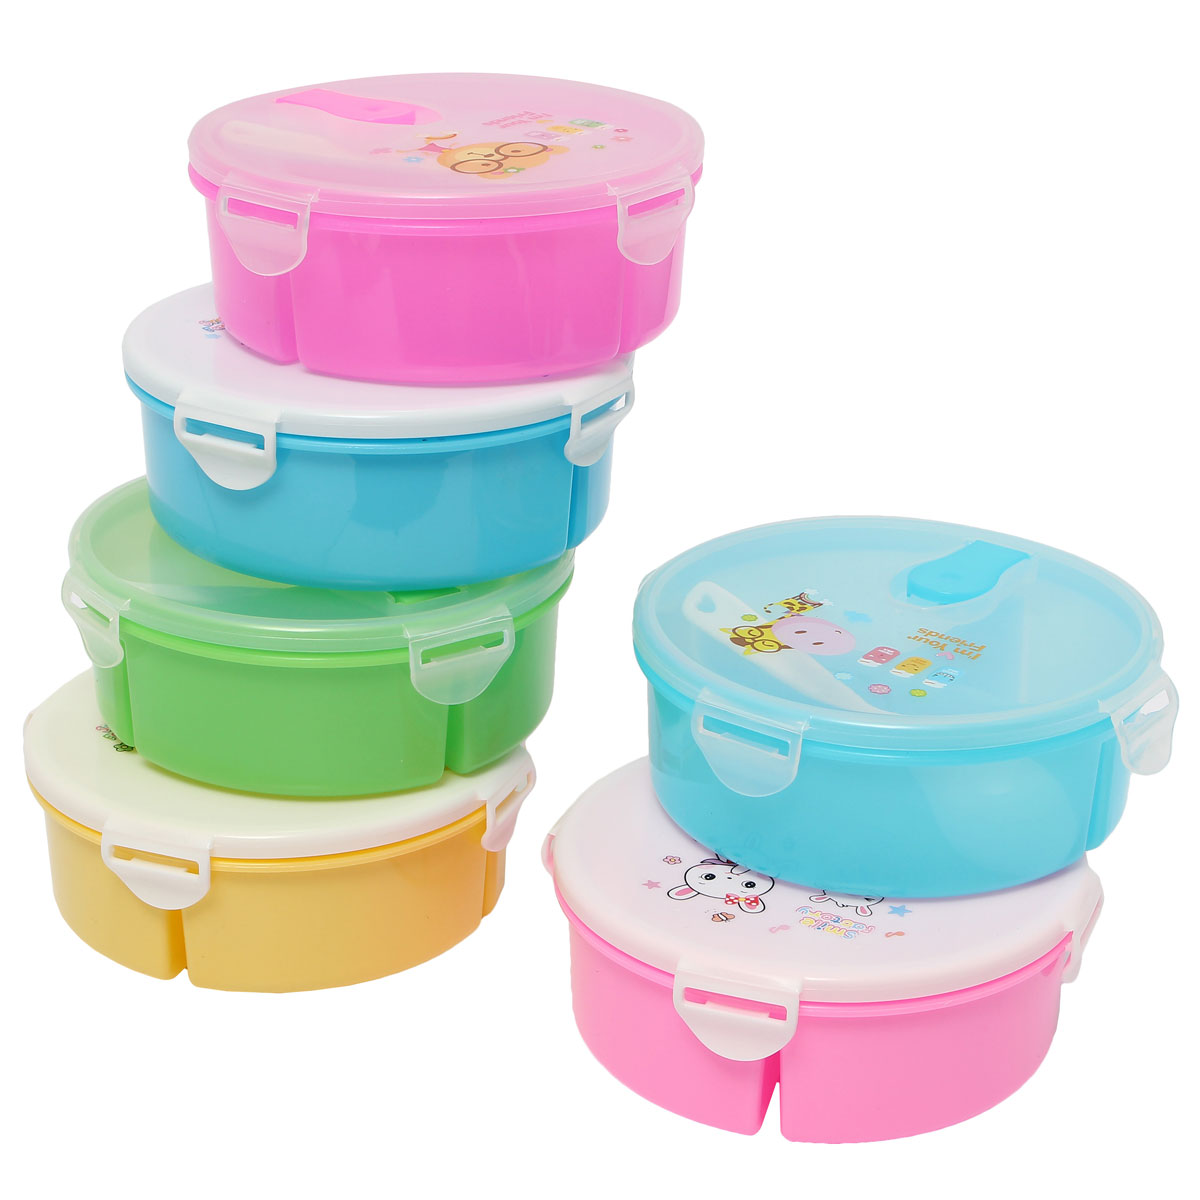 Top-Quality-Portable-Healthy-Round-Lunch-Box-Bento-Meal-Boxes-Baby-Food-Container-Japanese-Cartoon-Dinnerware Ways To Get Rid Of The Person Who Can Never Stop Eating Humor & Satire